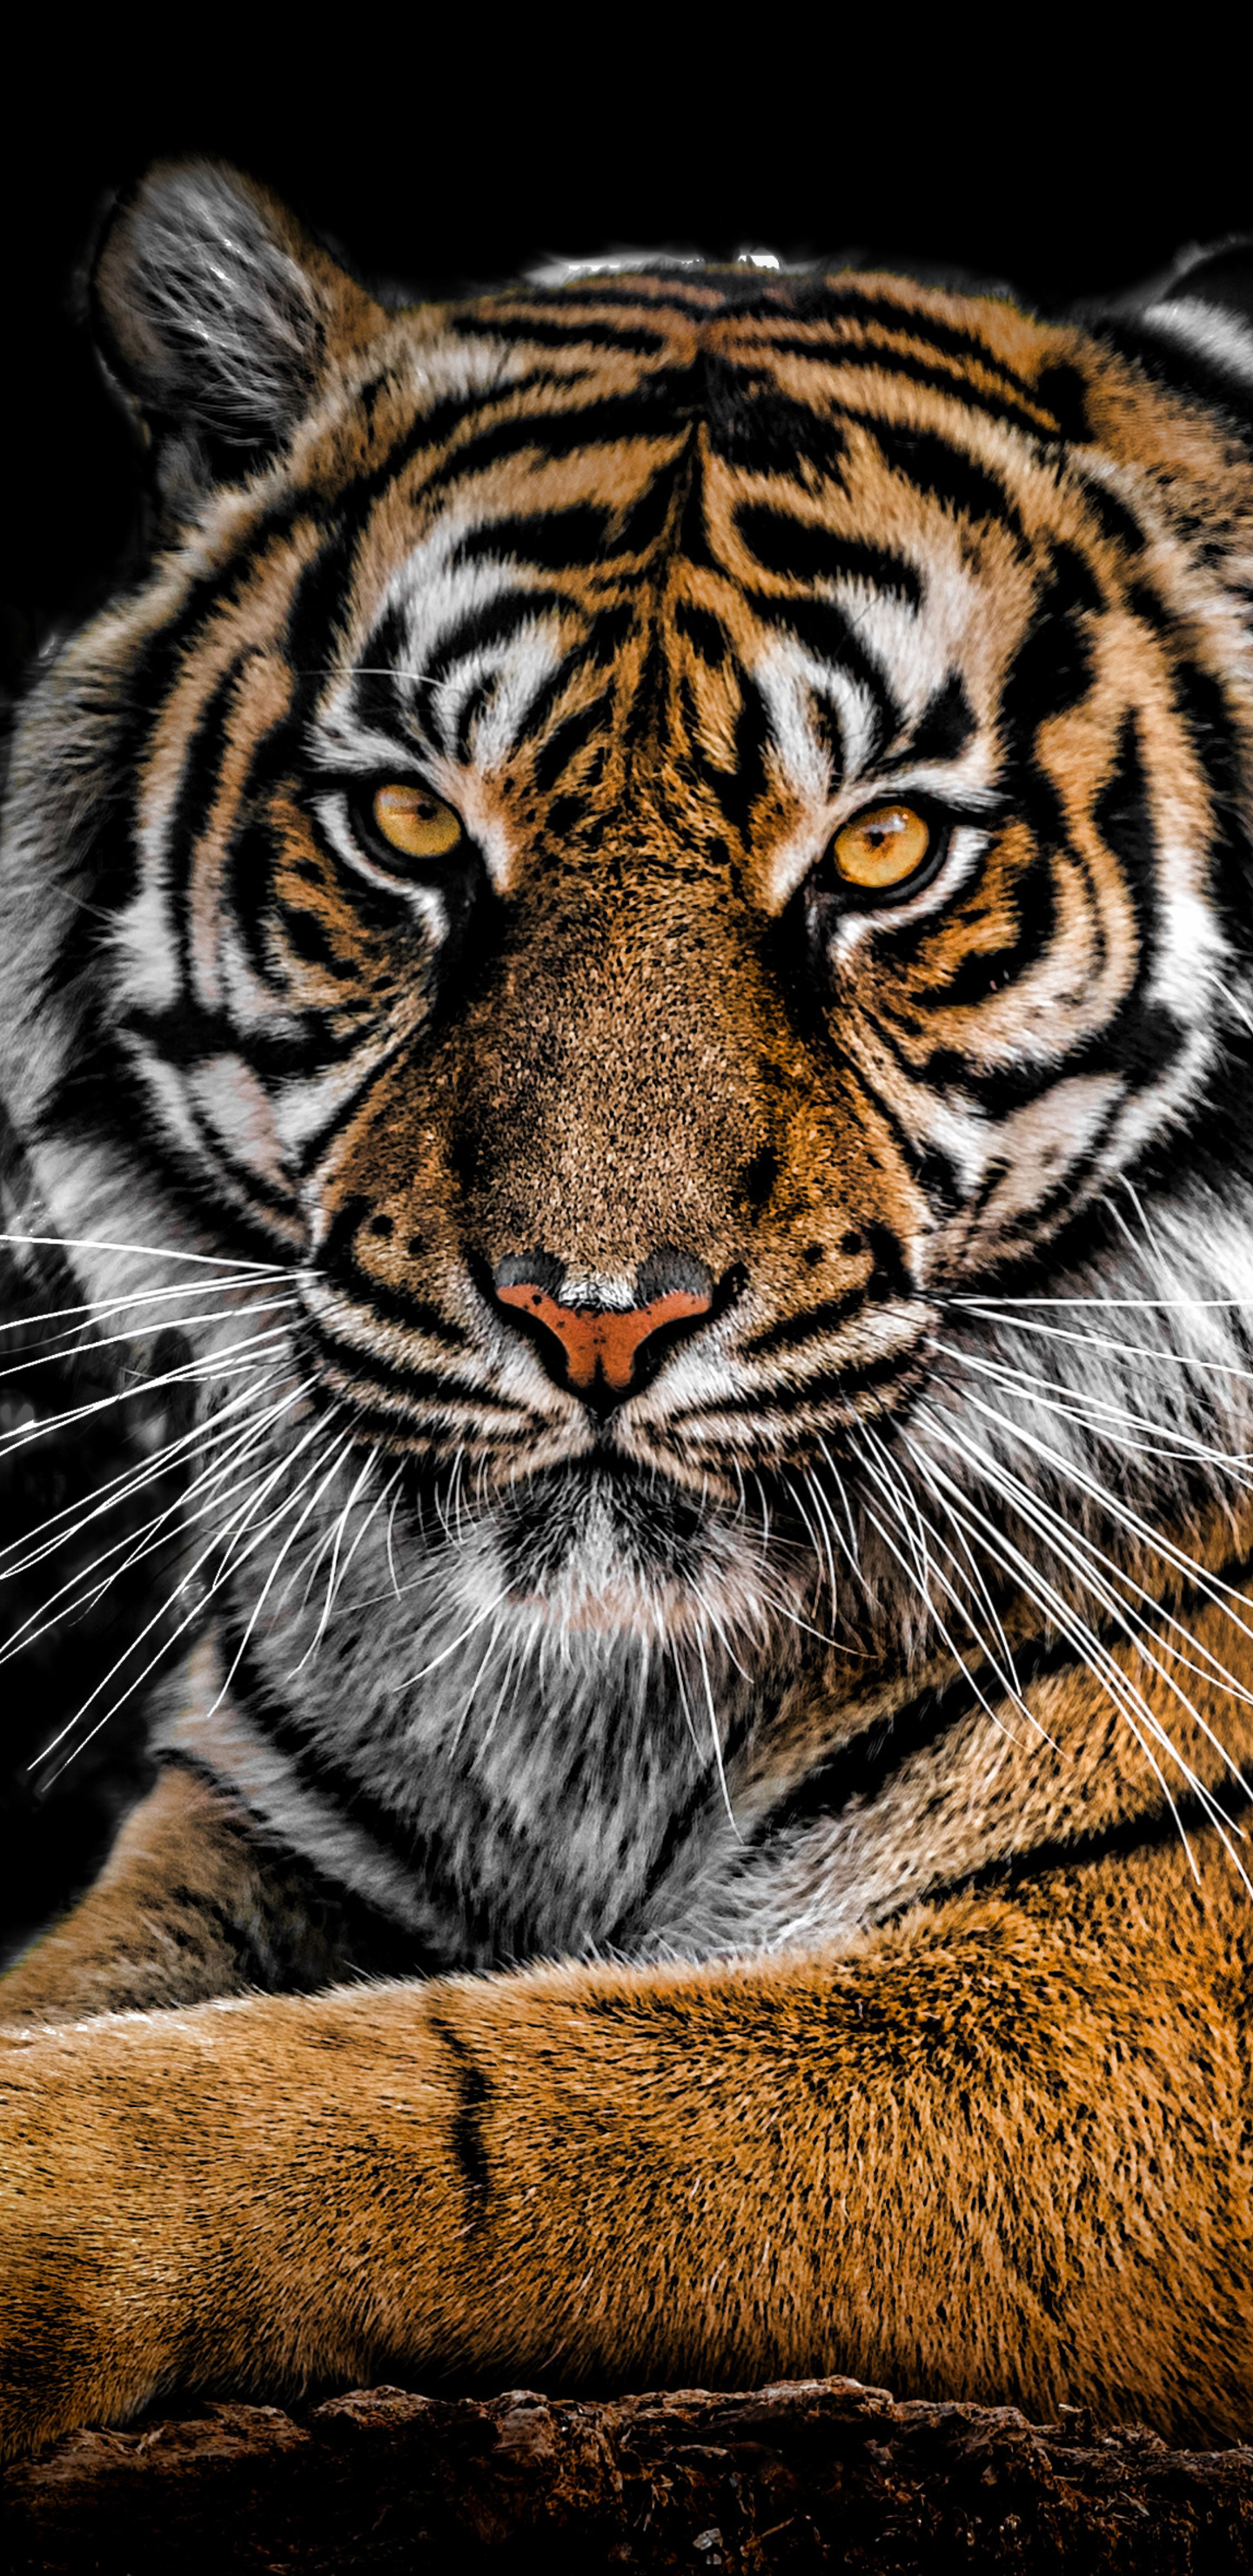 1440x2960 tiger closeup samsung galaxy note 9 8 s9 s8 s8 - Samsung s9 wallpaper 4k ...